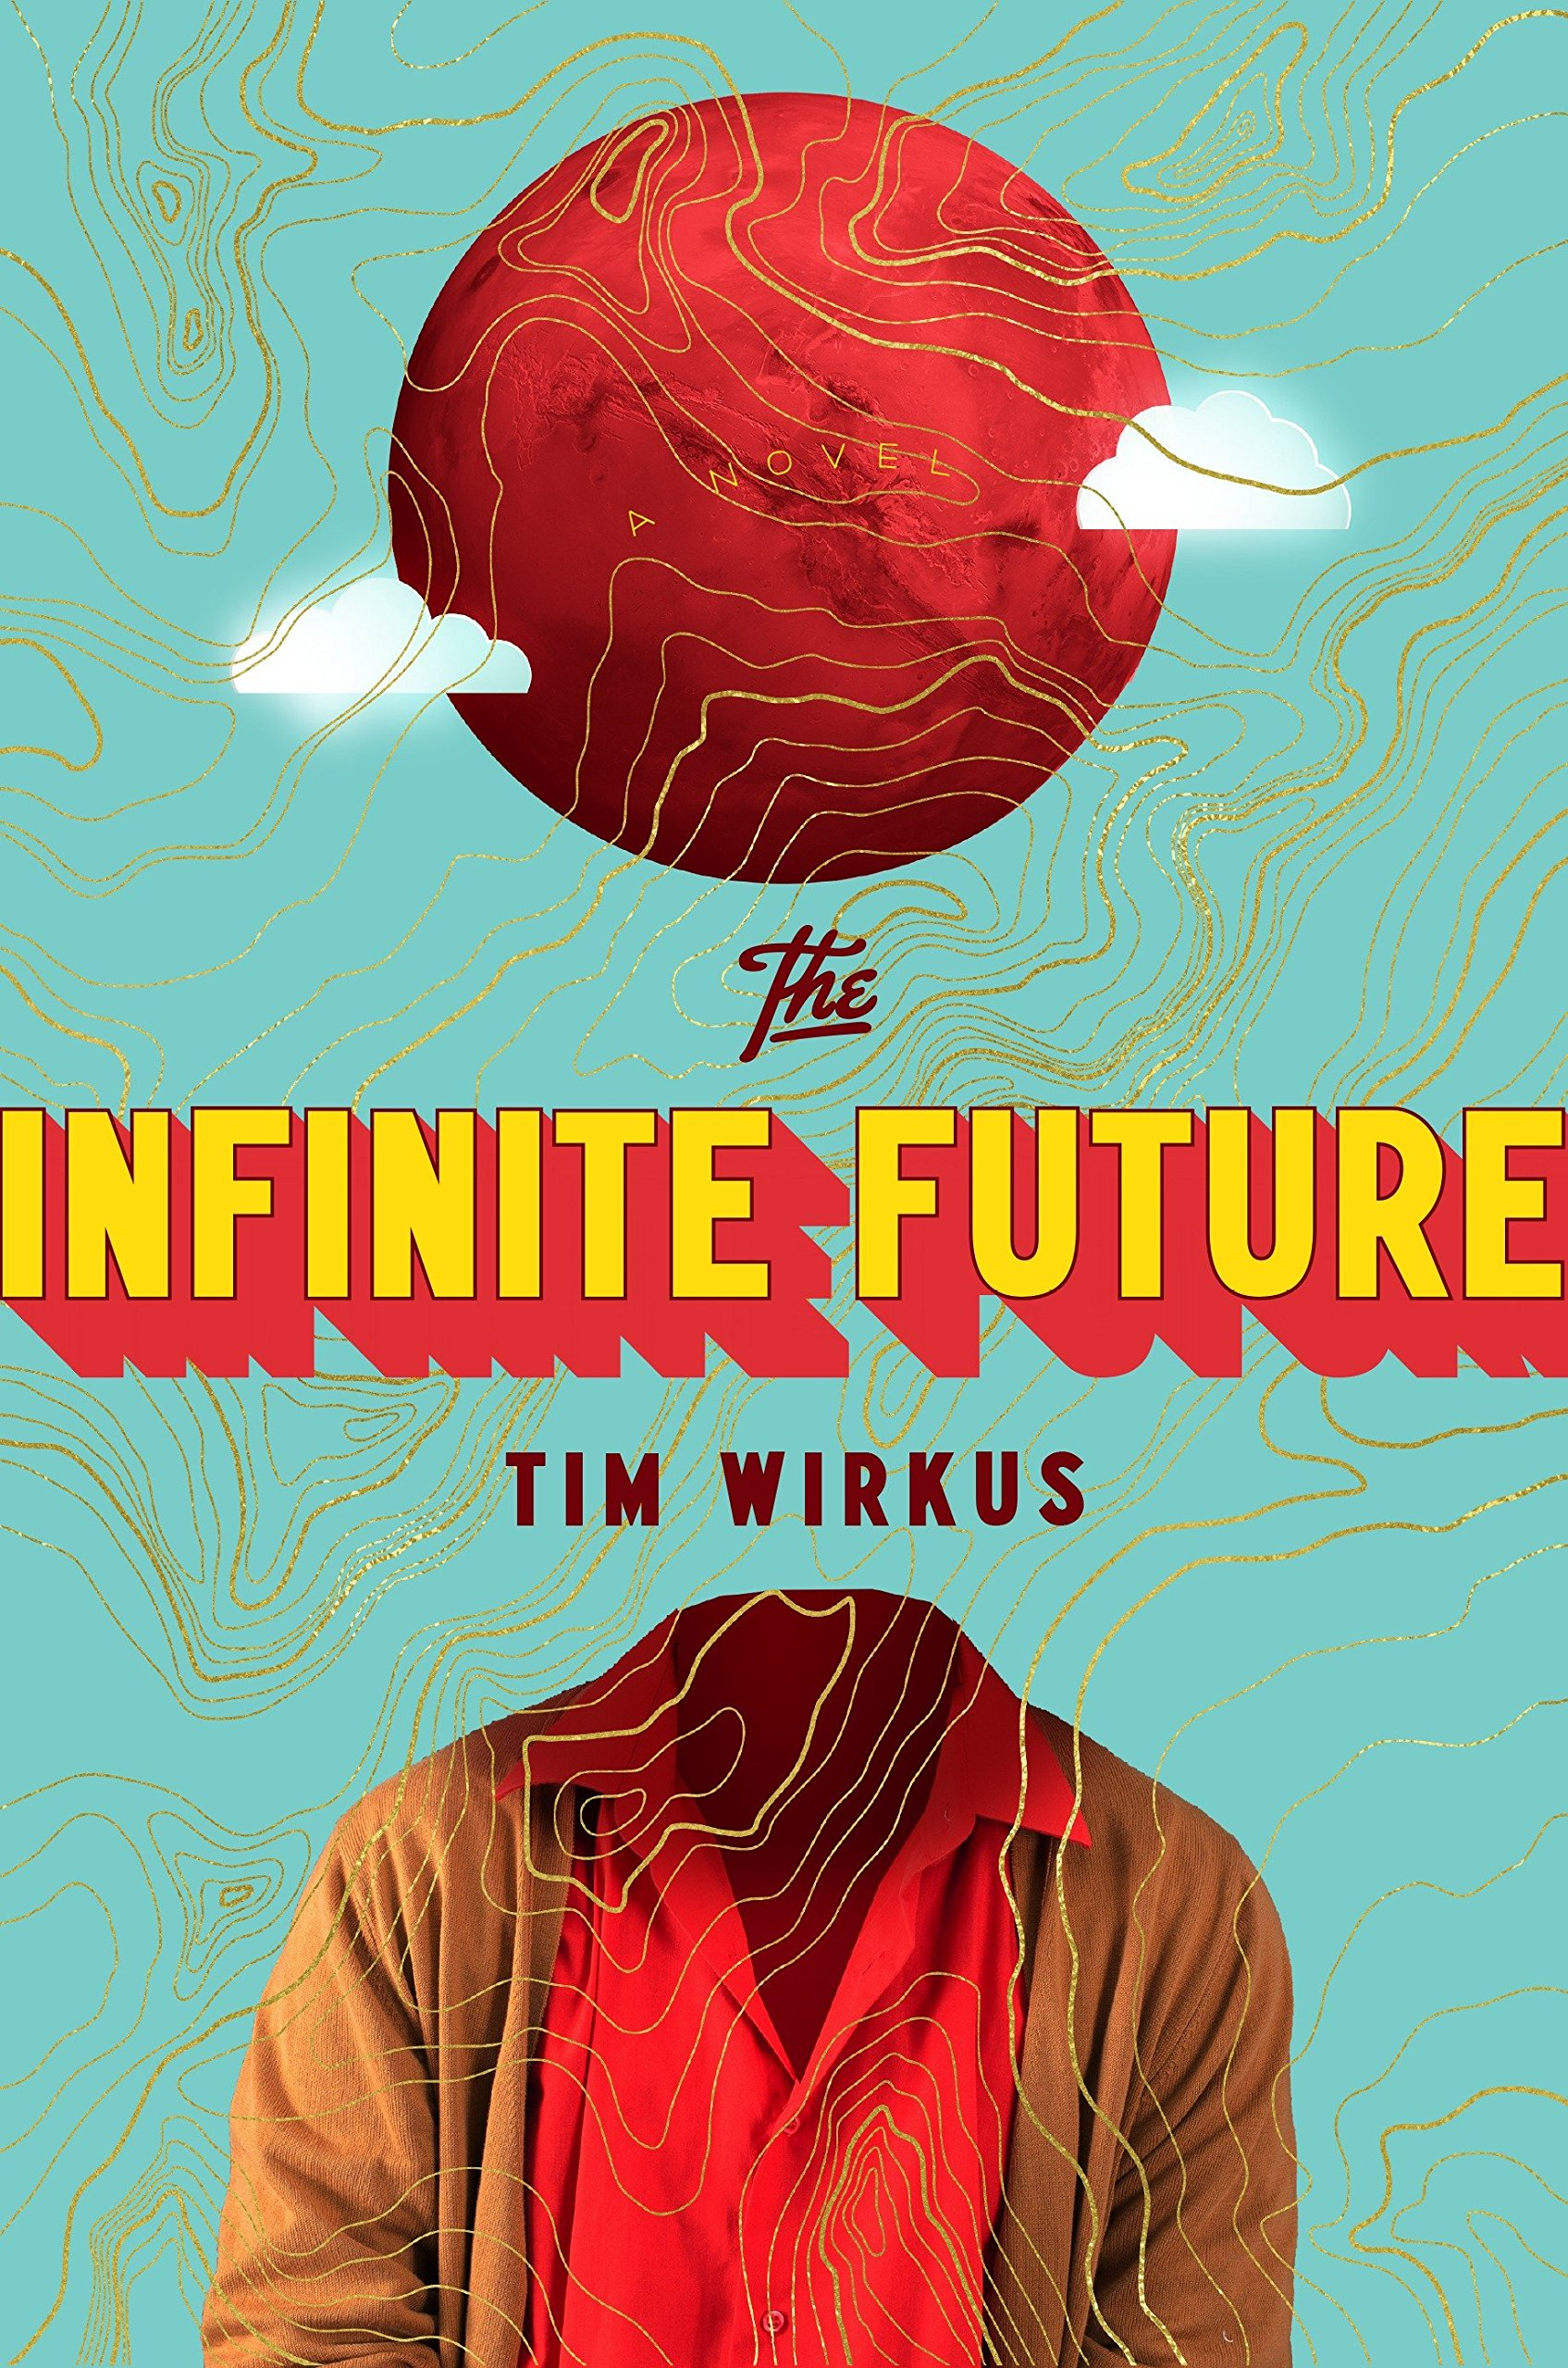 The infinite future / Tim Wirkus.